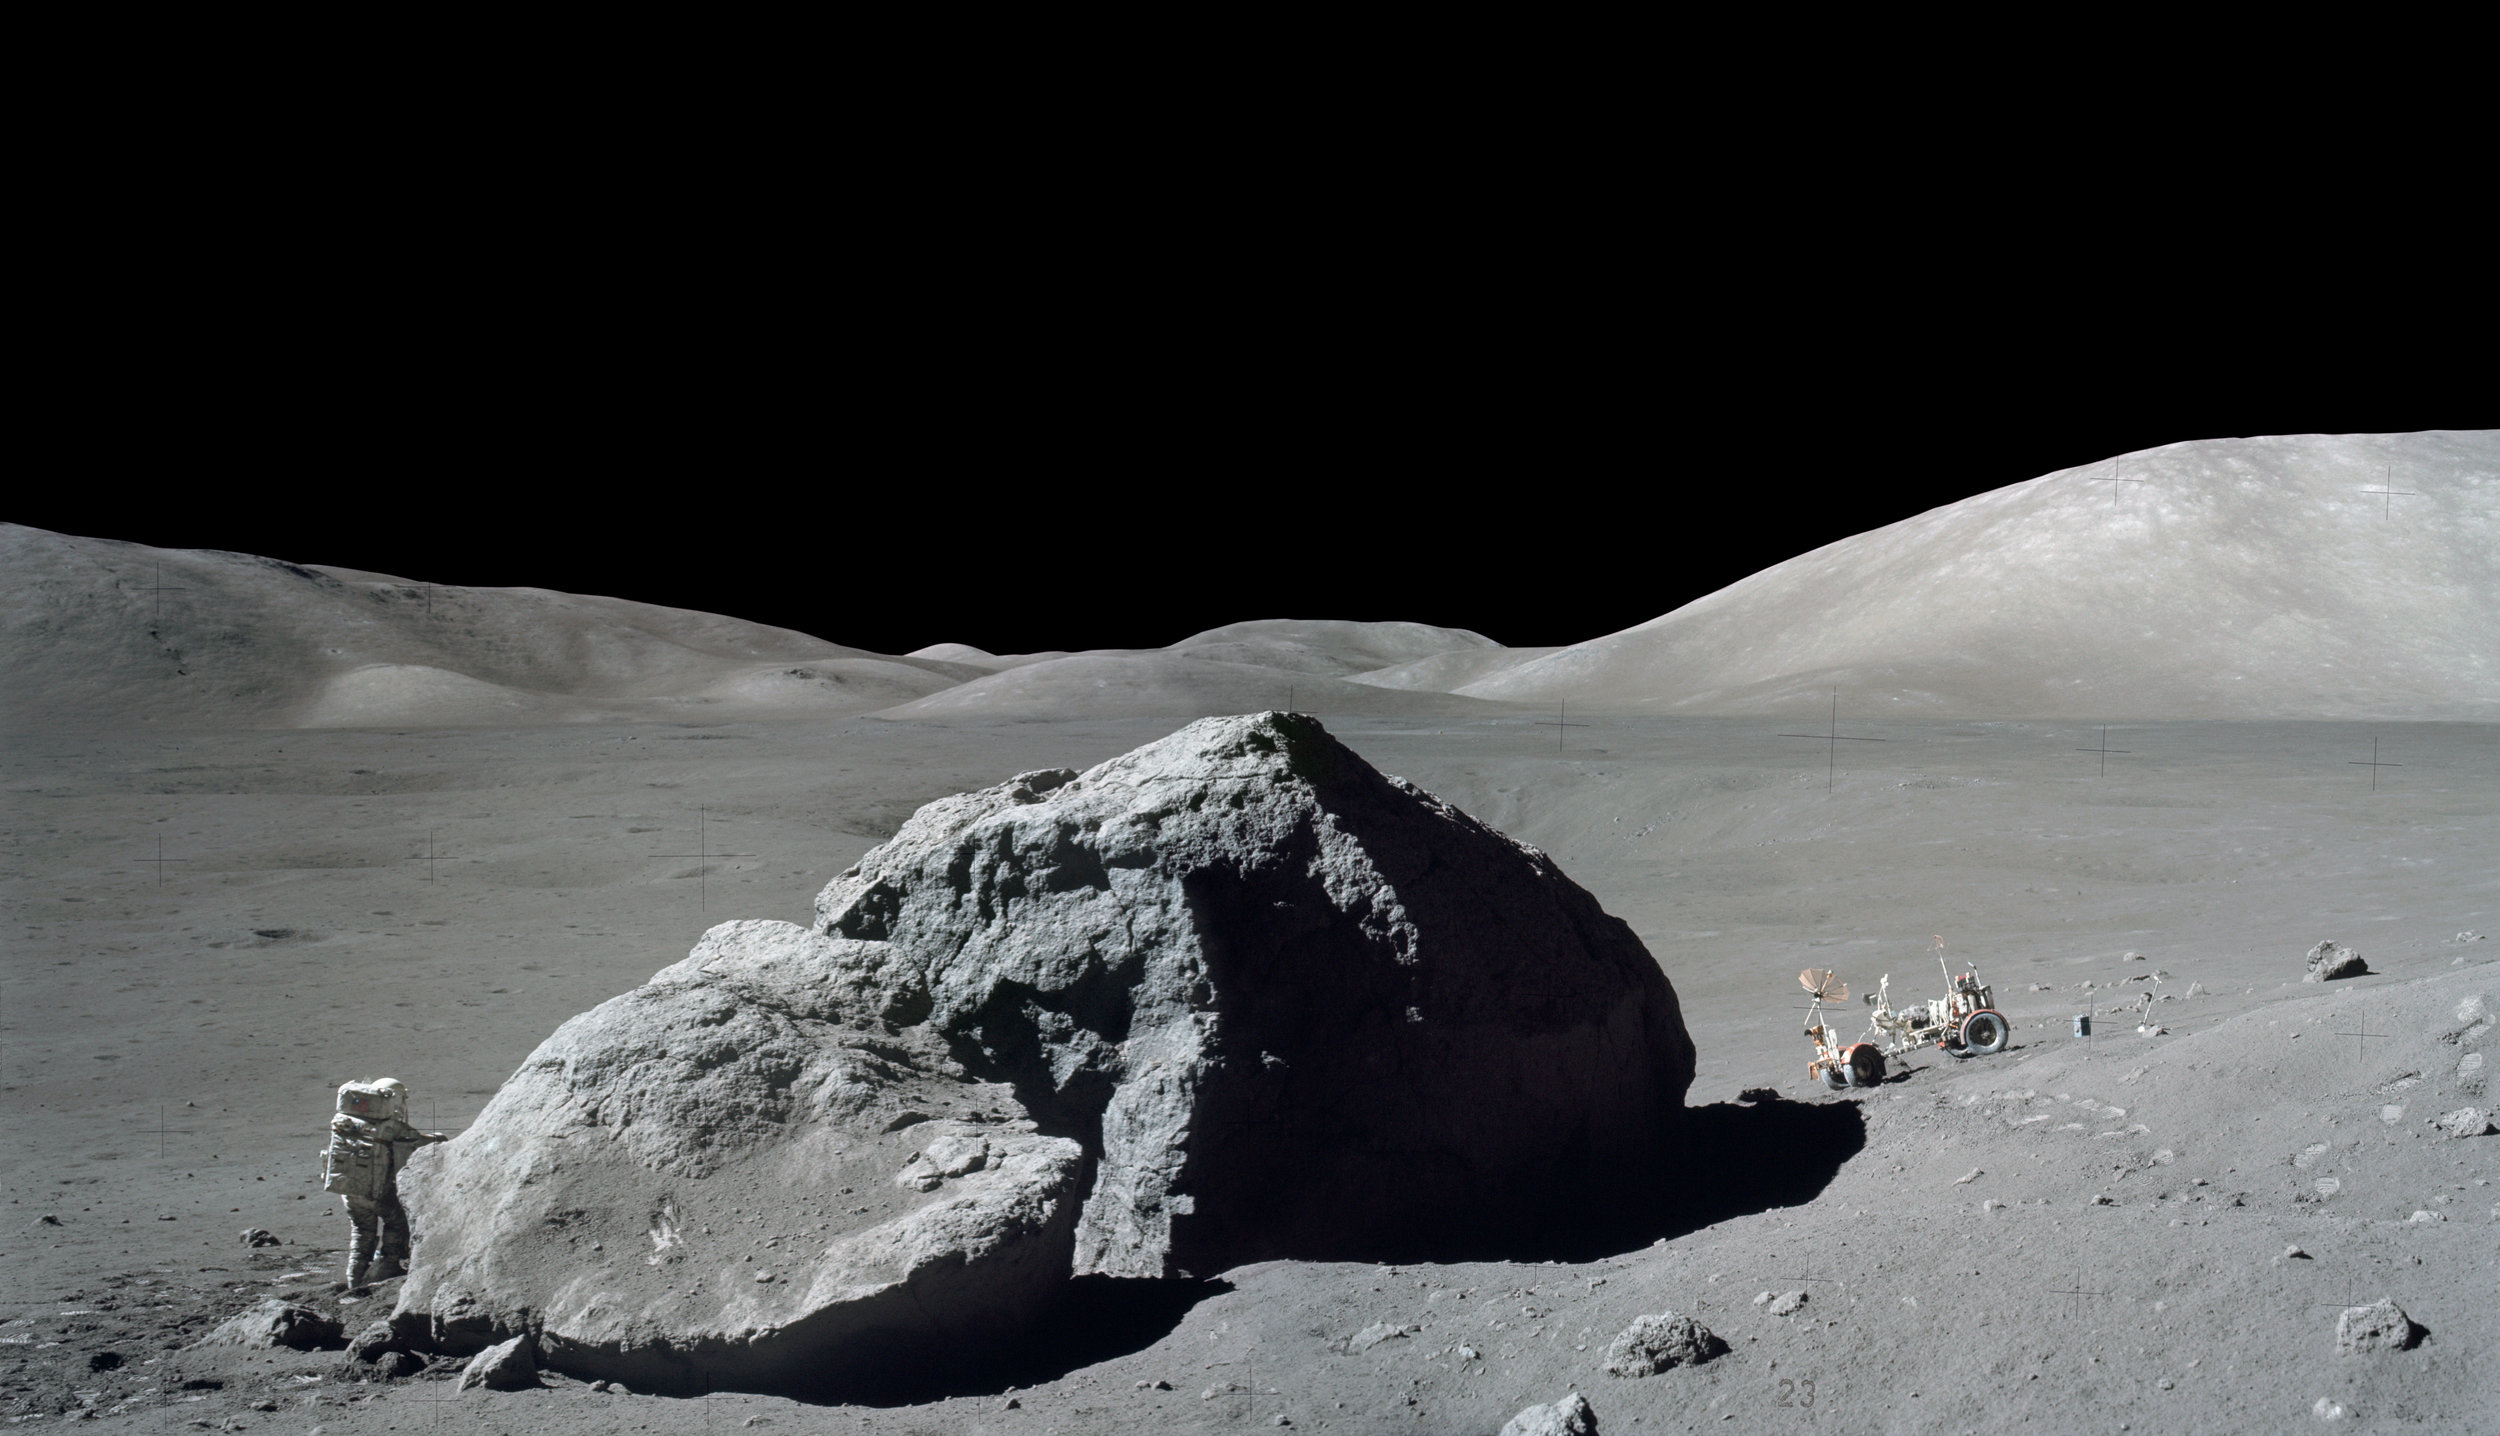 Smithsonian Website Caption: Dec. 13, 1972, scientist-astronaut Harrison H. Schmitt is photographed standing next to a huge, split lunar boulder during the third Apollo 17 extravehicular activity (EVA) at the Taurus-Littrow landing site. The Lunar Roving Vehicle (LRV), which transported Schmitt and Eugene A. Cernan to this extravehicular station from their Lunar Module (LM), is seen in the background. The mosaic is made from two frames from Apollo 17 Hasselblad magazine 140. The two frames were photographed by Cernan.